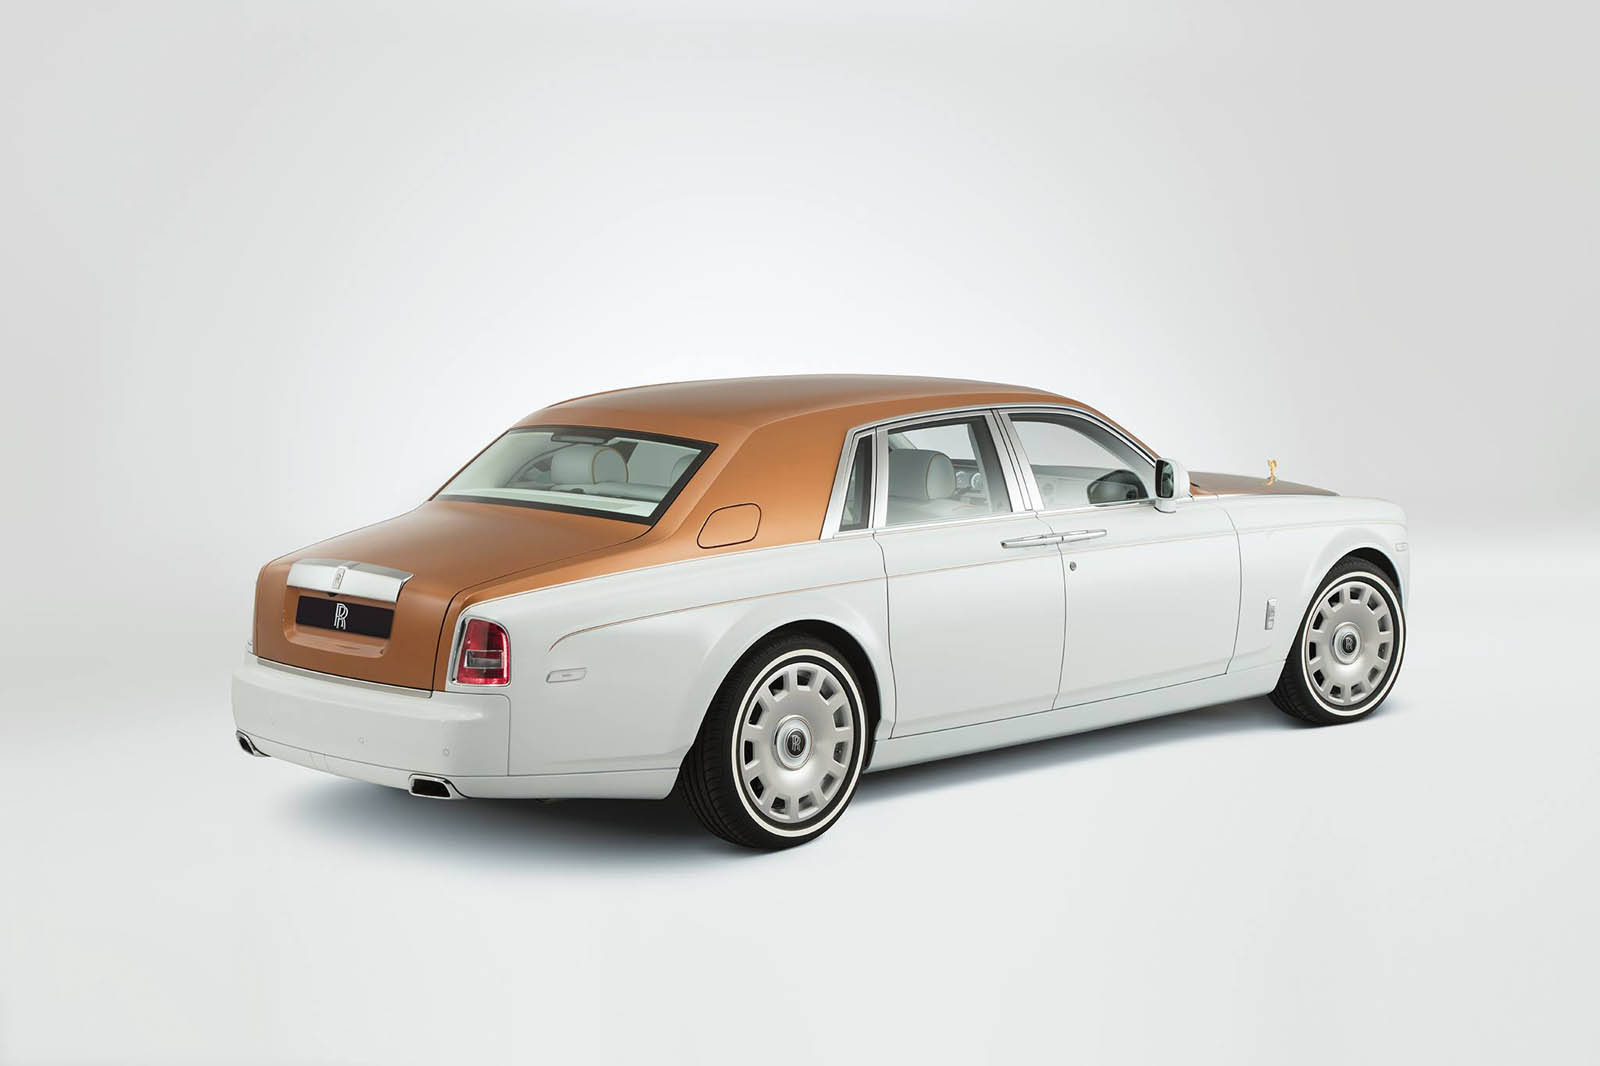 rolls-royce-Phantom-inspired-by-Sheikh-Zayed-Grand-Mosque-13